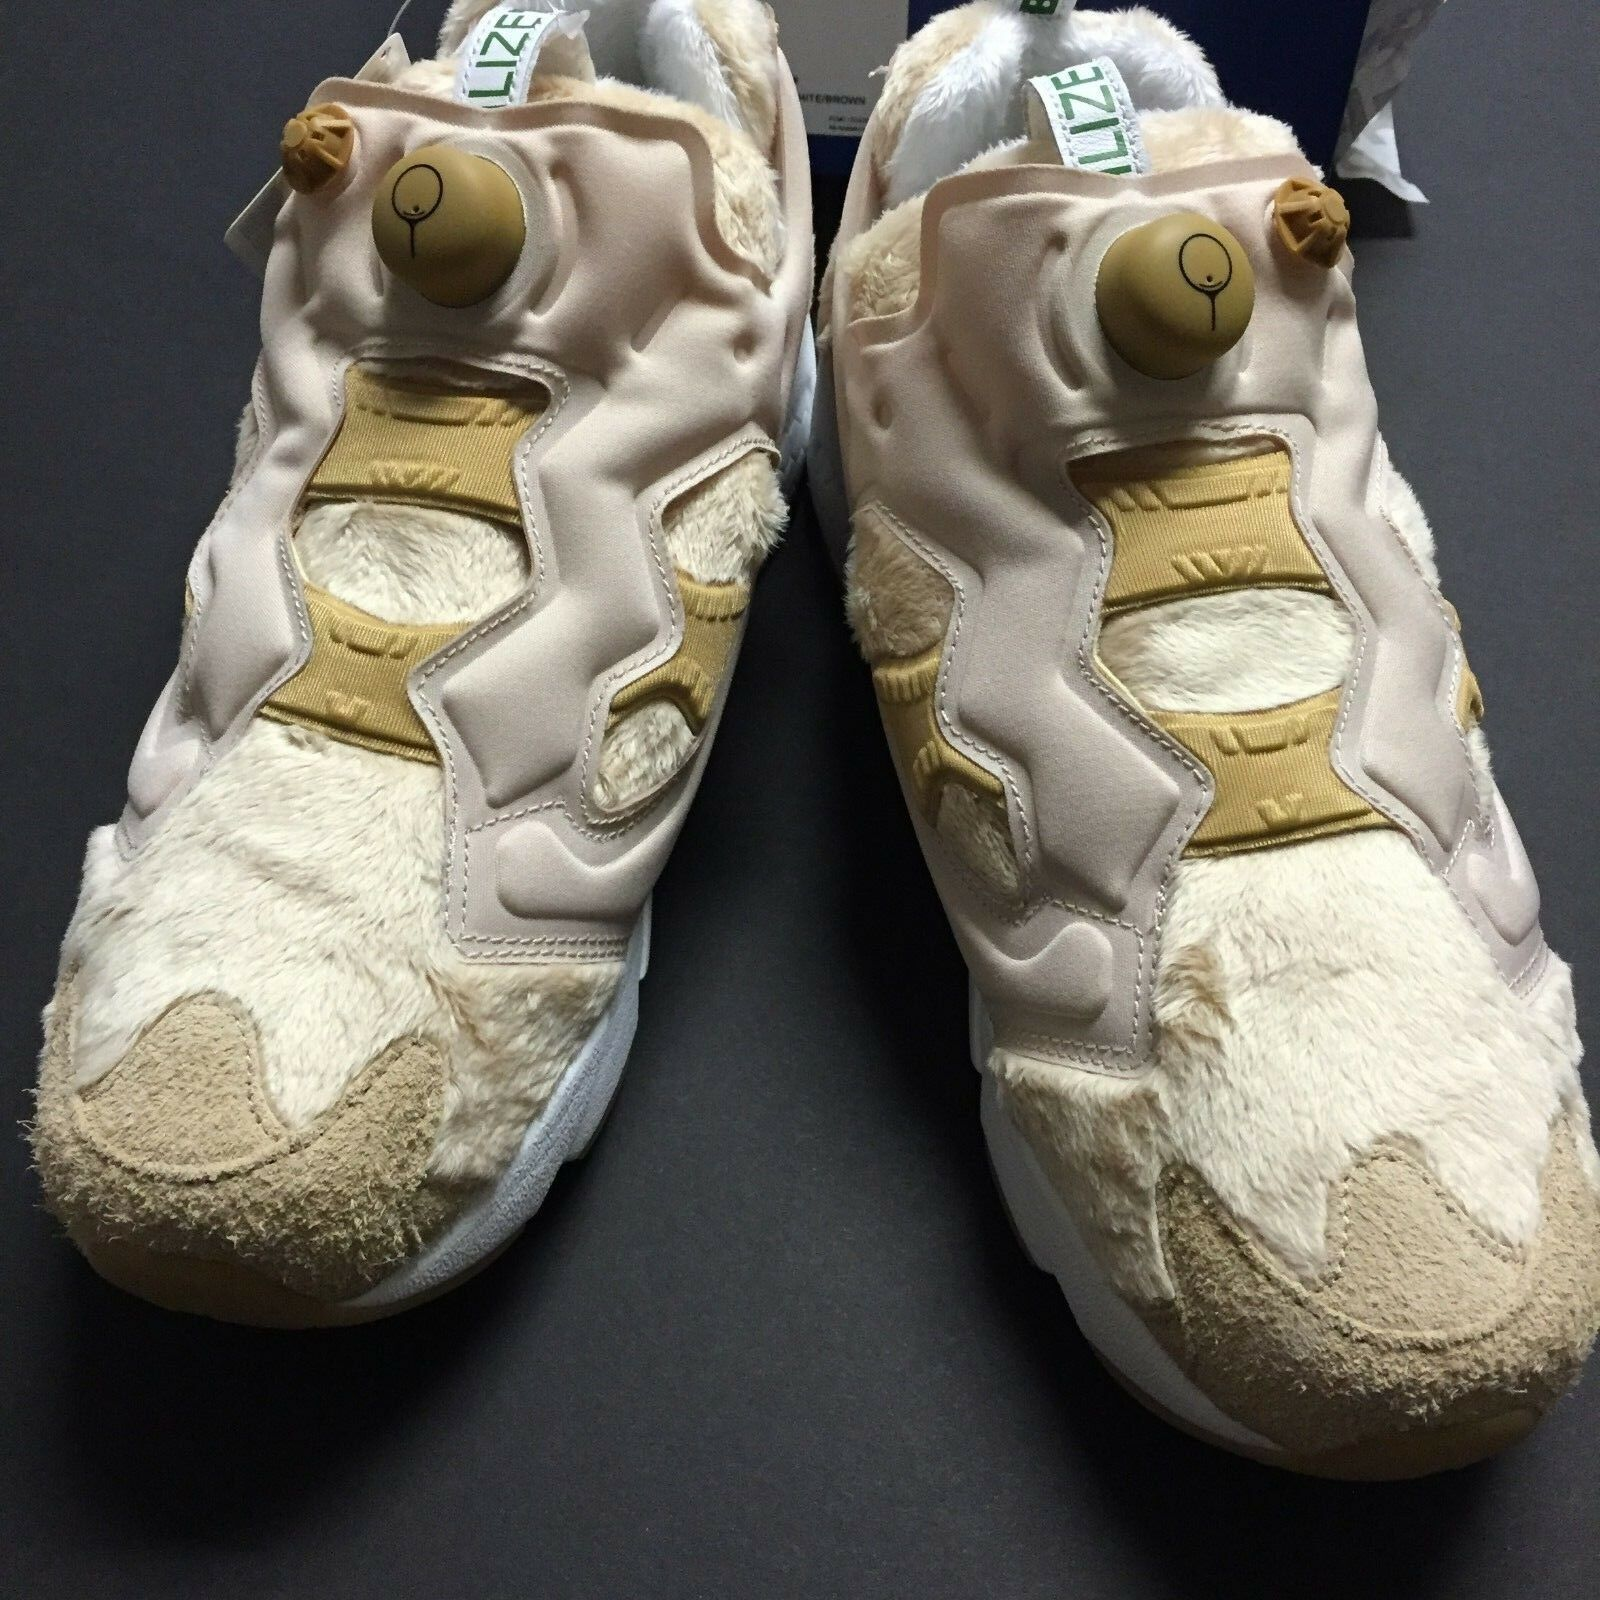 3fbf01fd Reebok Instapump Fury OG Disney JB Jungle Book AQ9213 Animal Print Size 9.5  US for sale online | eBay